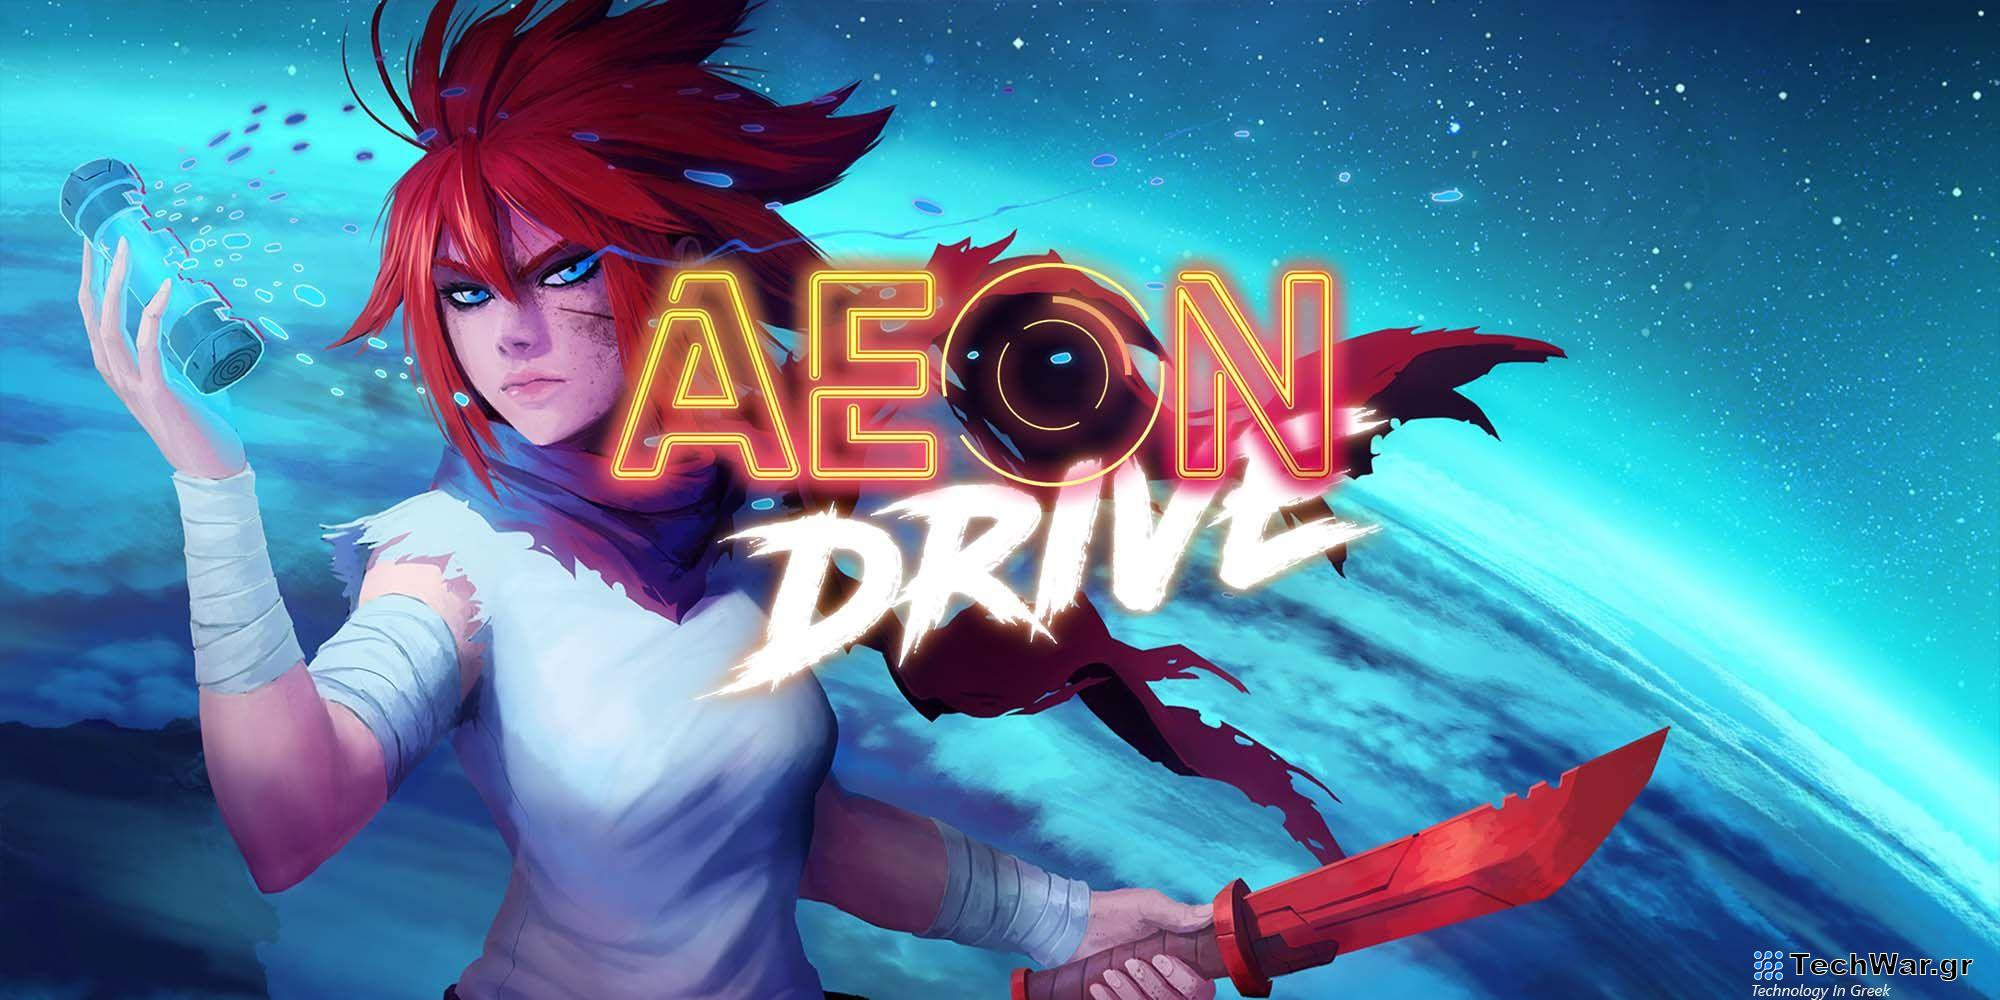 Aeon Drive Review A Fun Fast Game Caught Up On The Small Details feature pic - Busted Gaming Scout #77 | Όταν μιλάμε για Cyberpunk Indies μιλούμε για το Aeon Drive